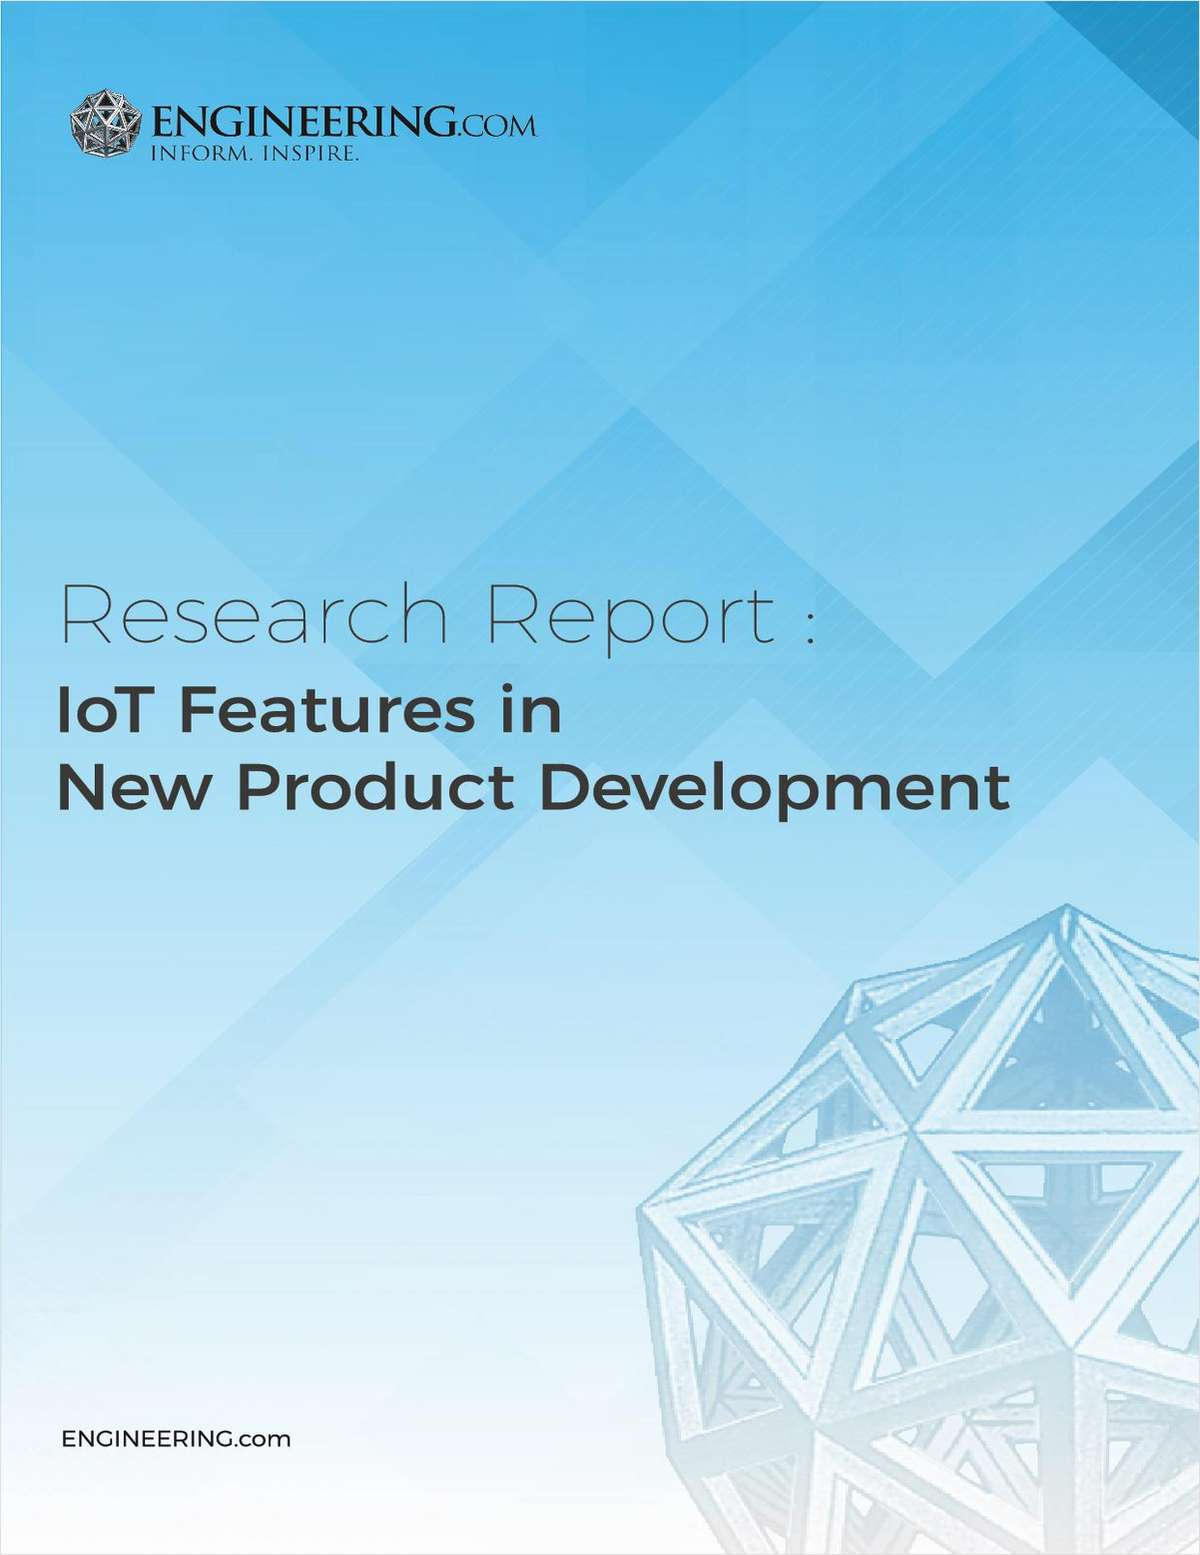 IoT Features in New Product Development